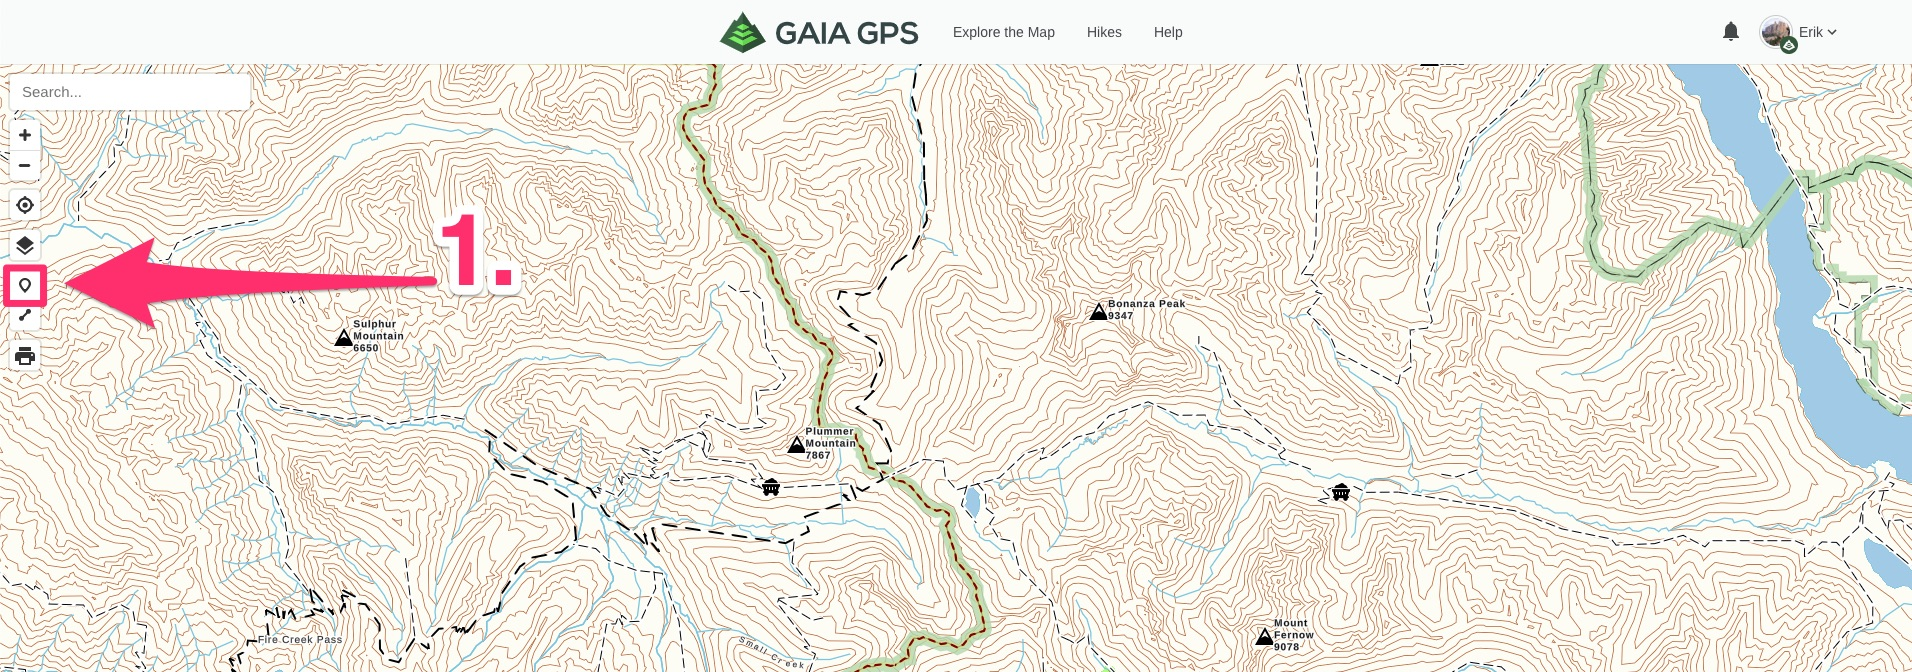 Gaia gps for pc